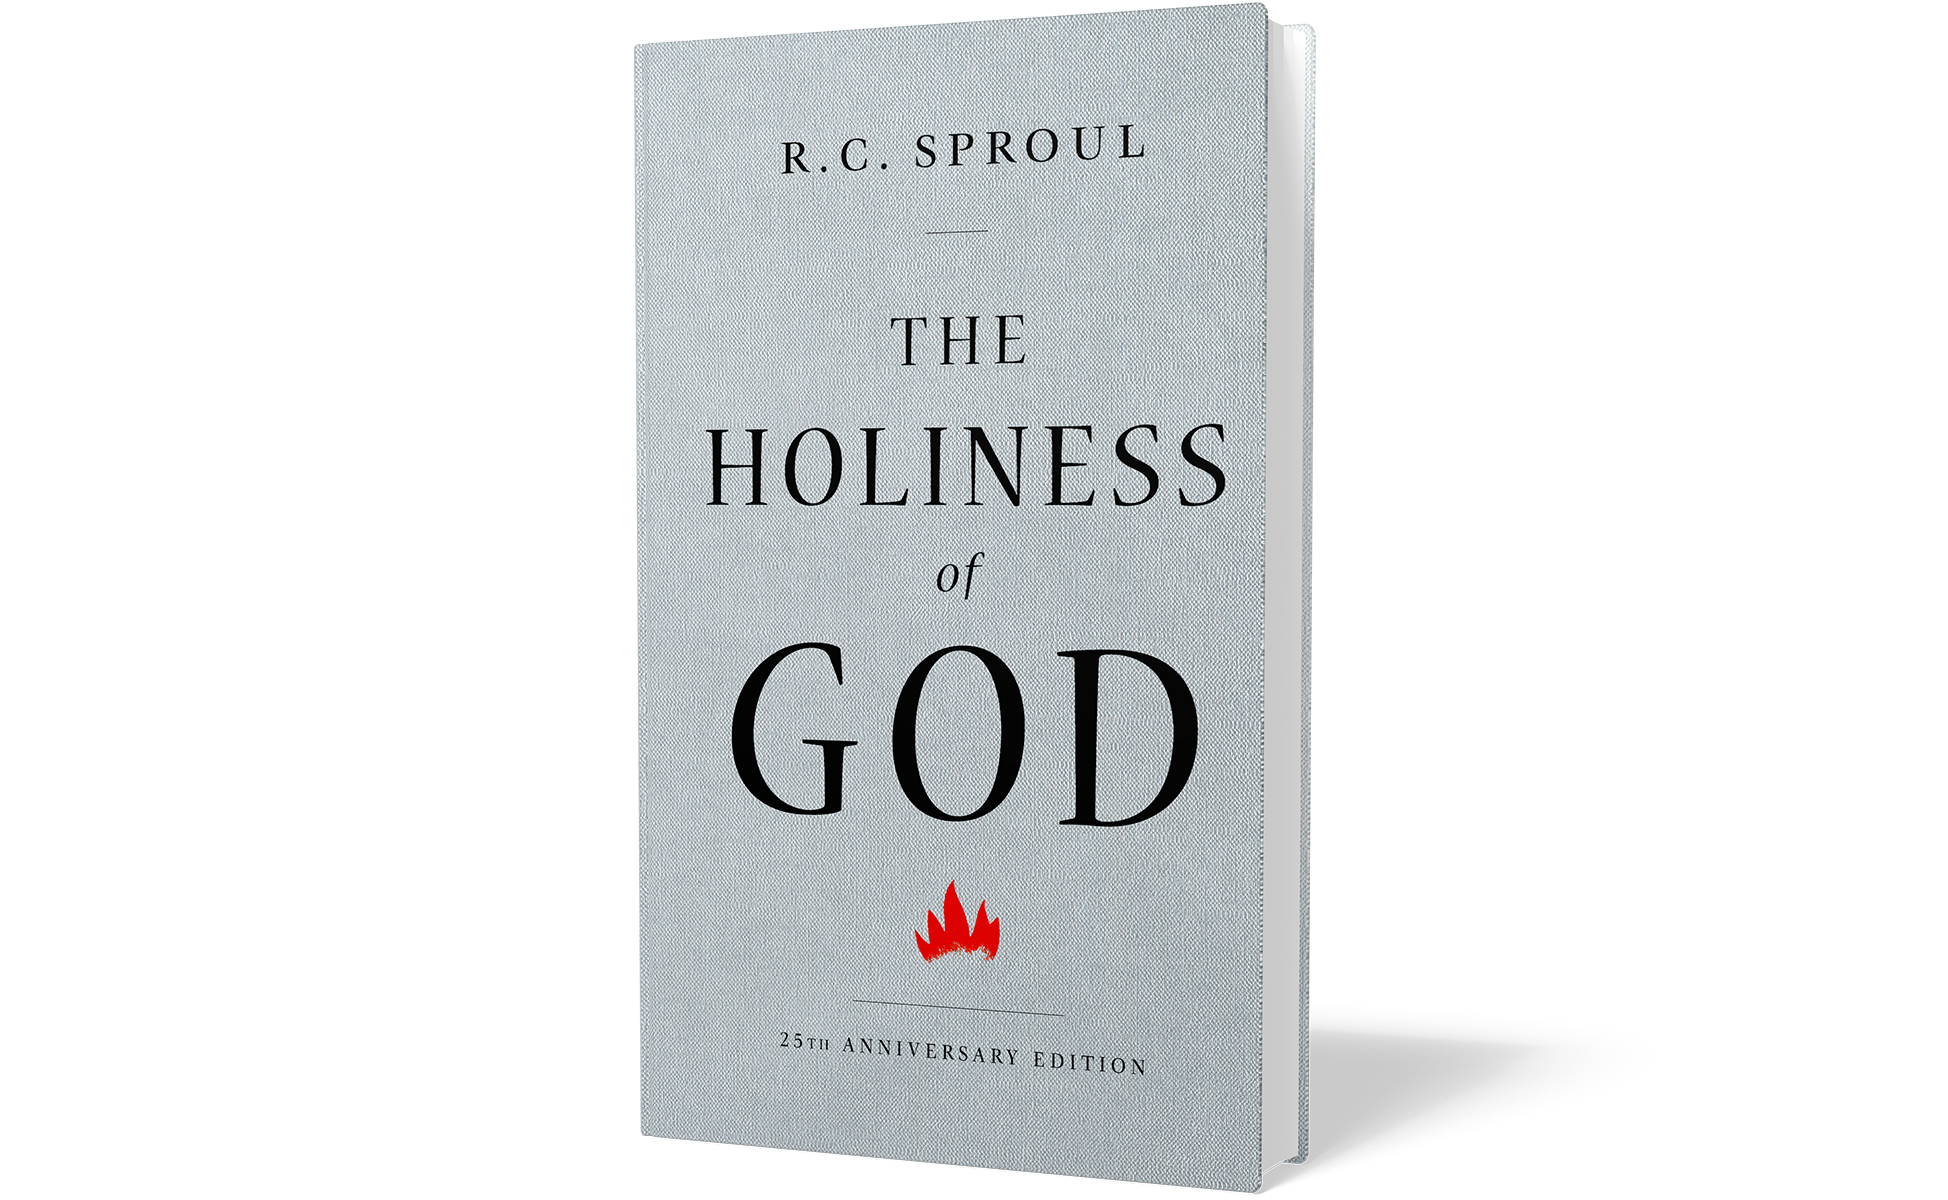 The Holiness of God: 25th Anniversary Edition